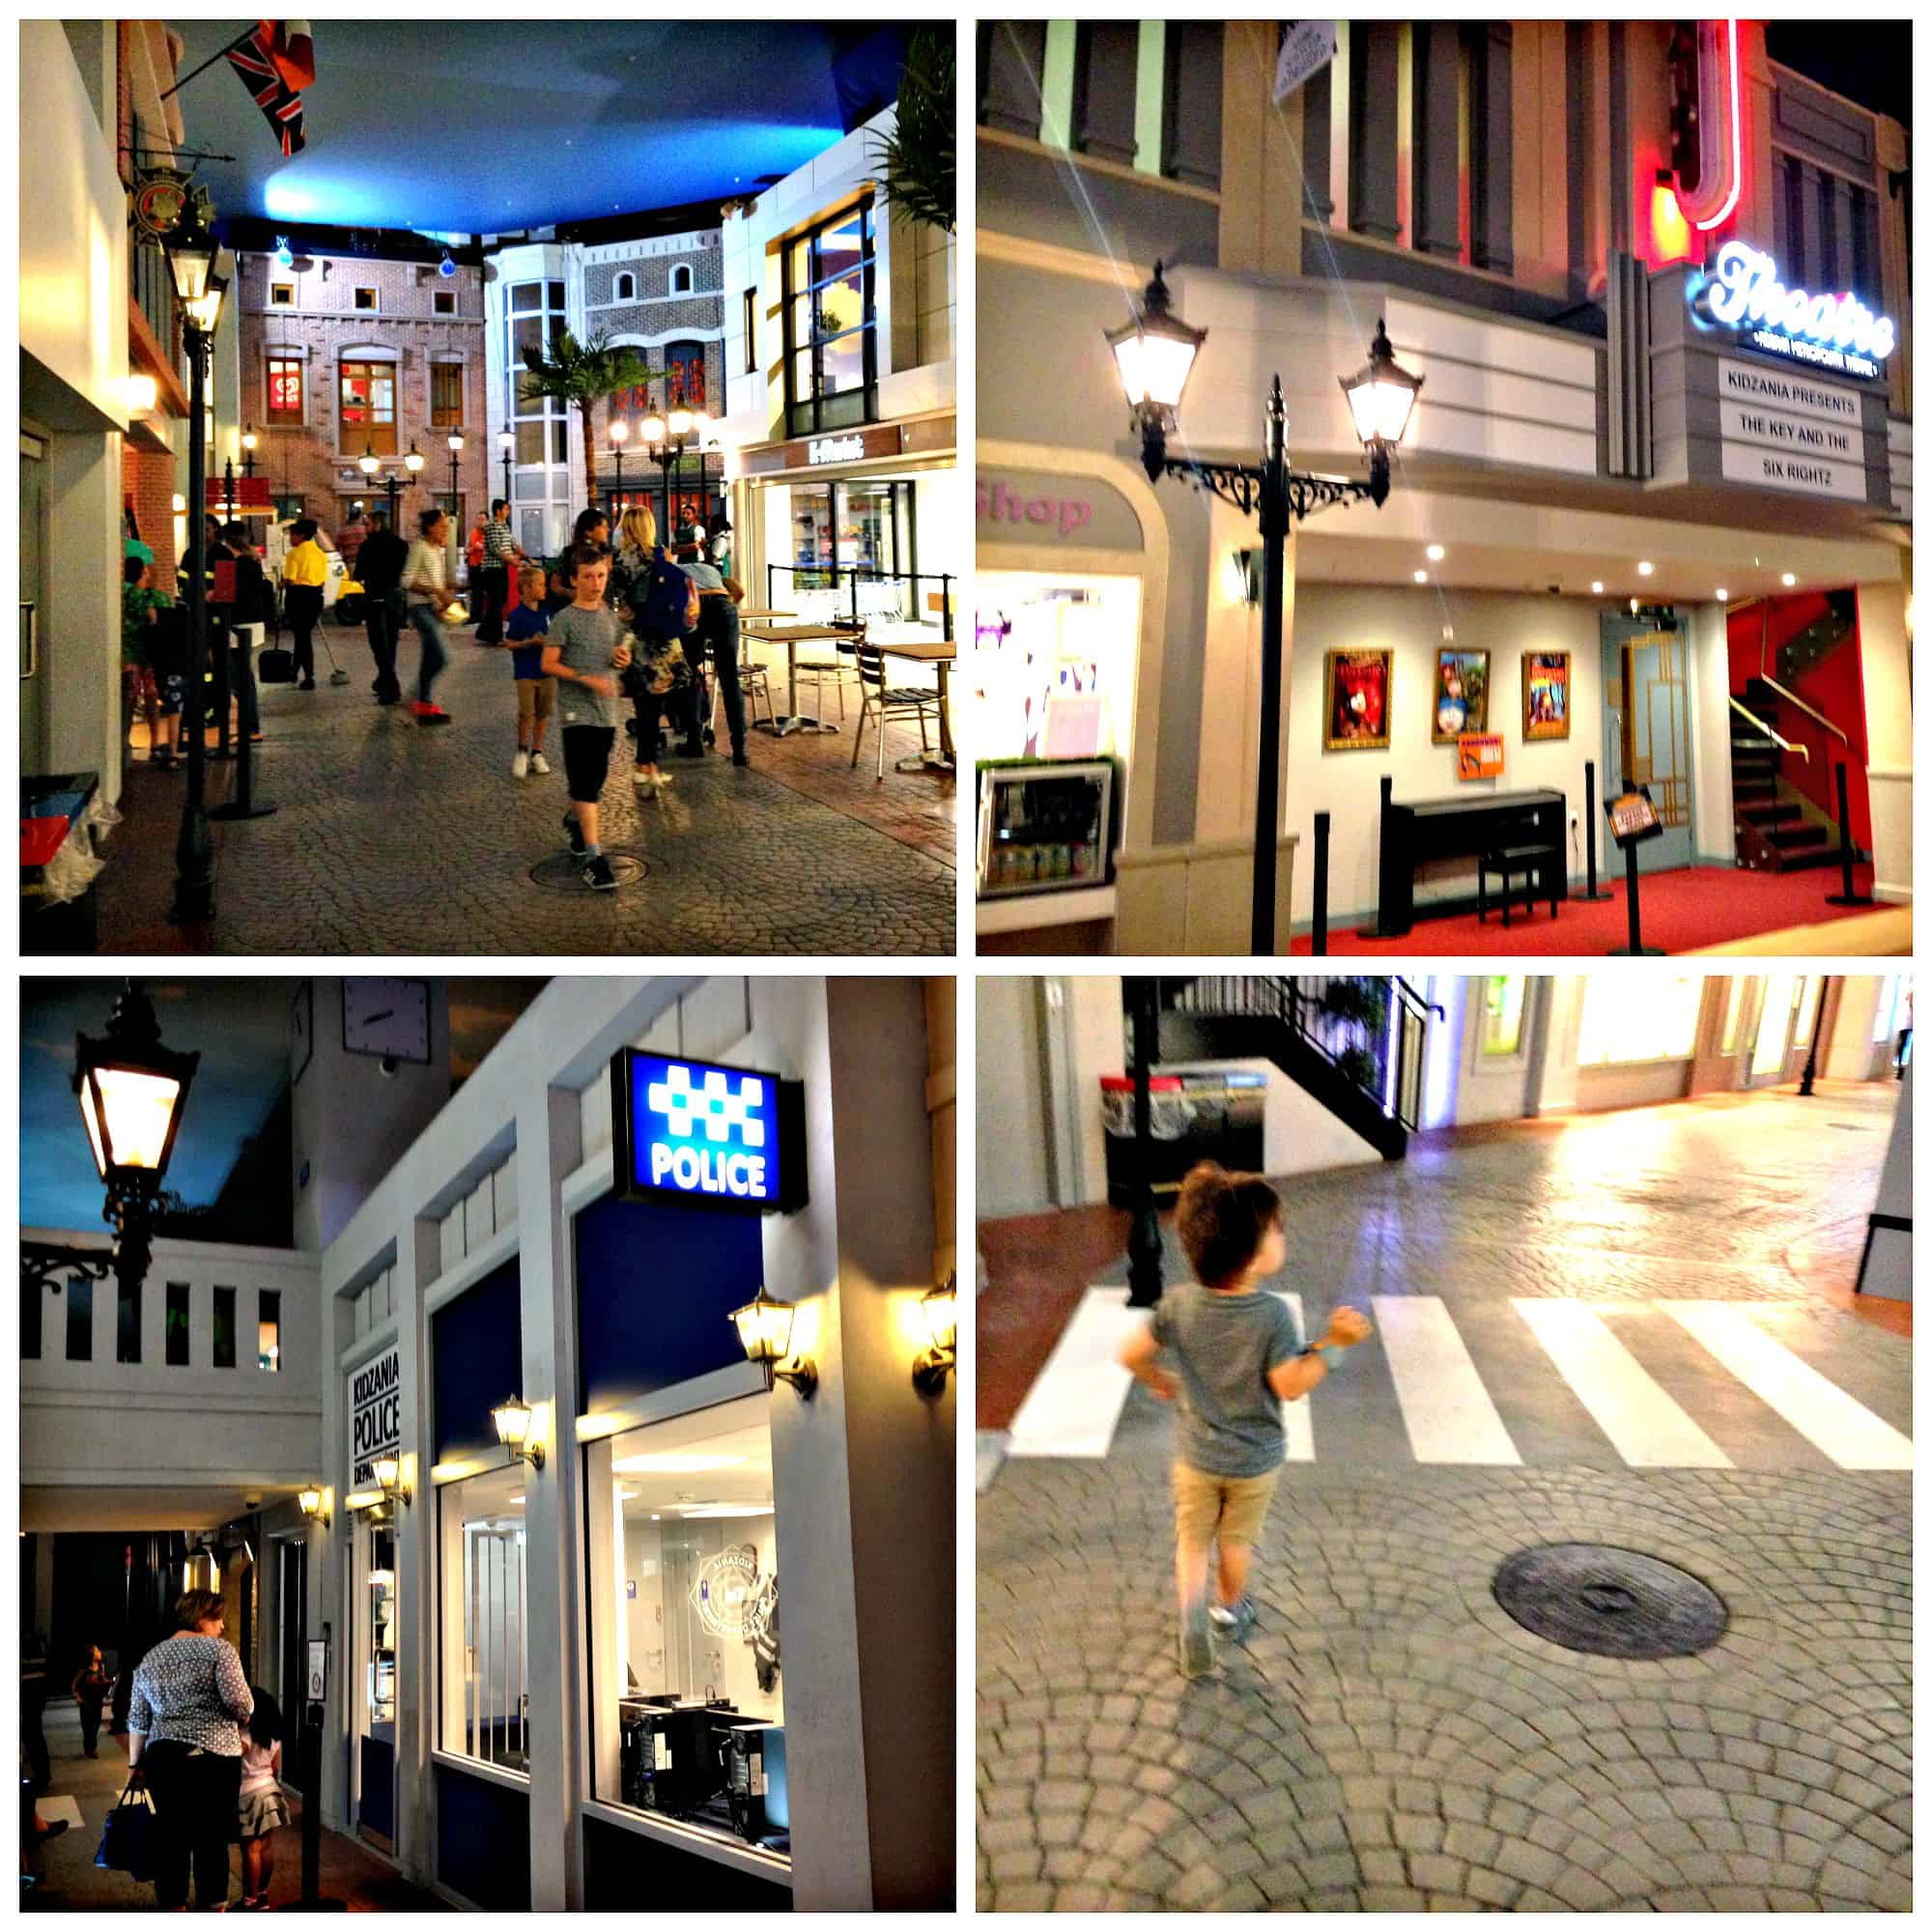 KidZania Westfield London - All You Need To Know | My Travel Monkey